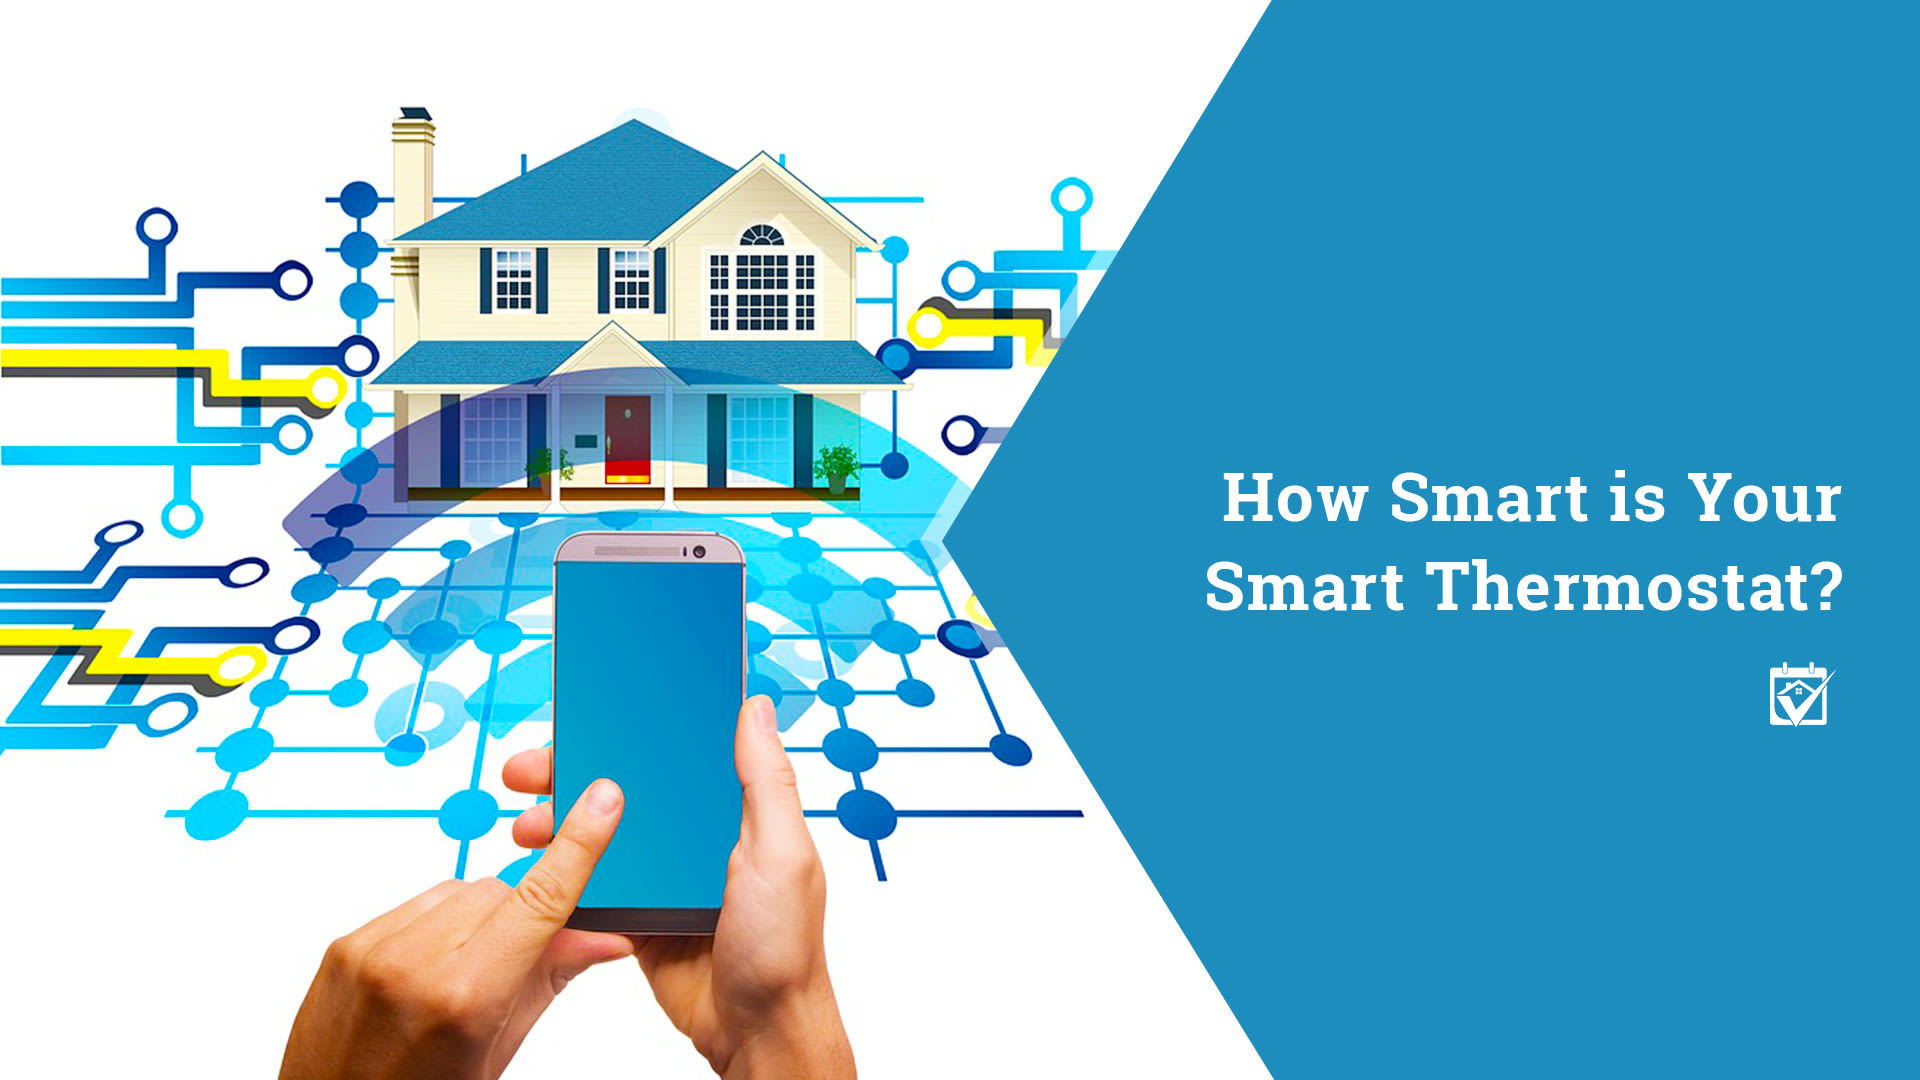 How Smart if your smart Thermostat?